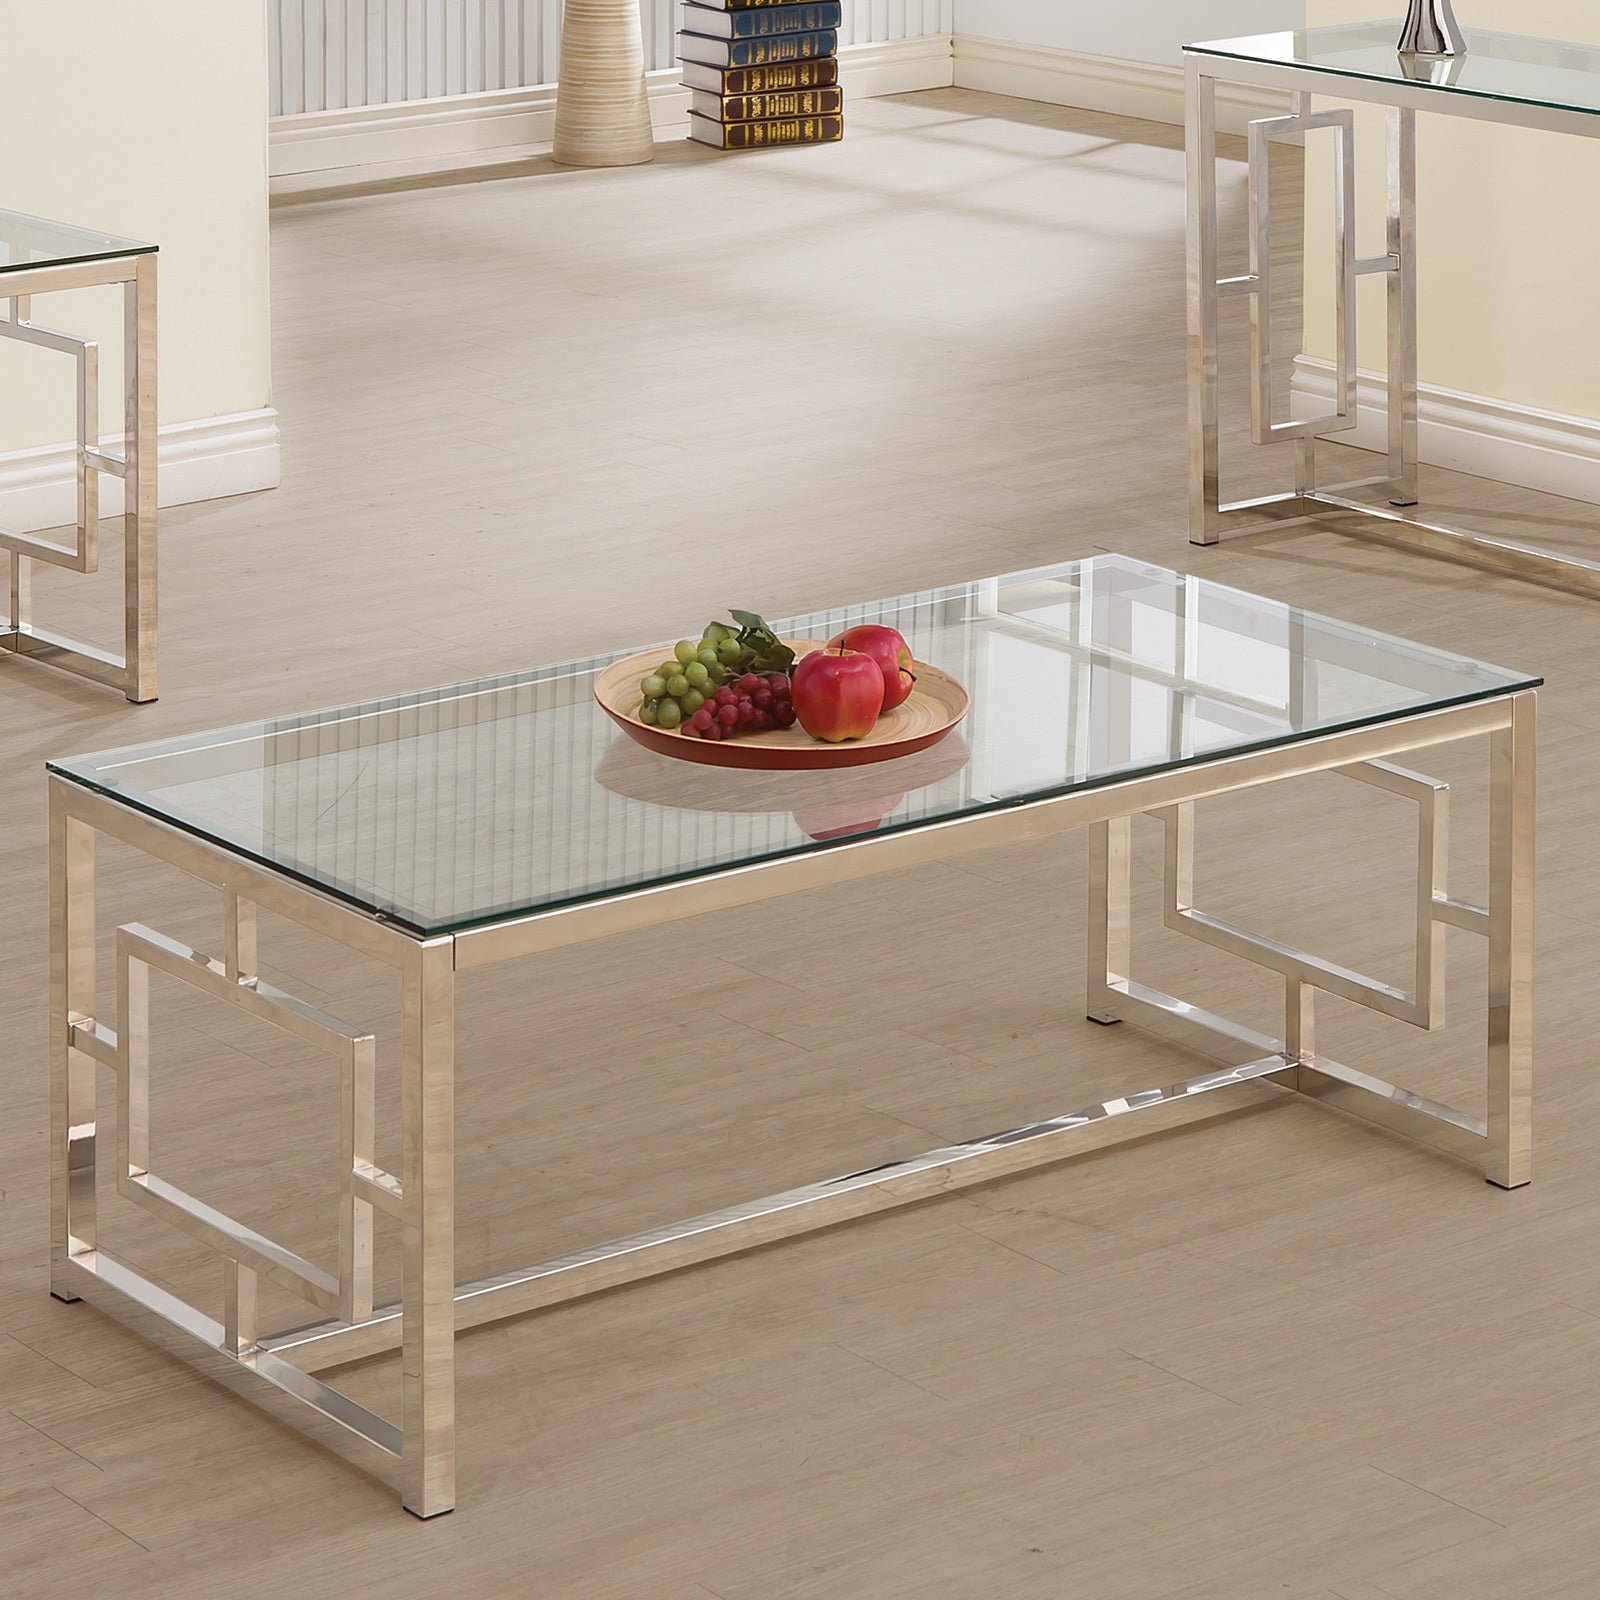 Widely Used Silver Orchid Olivia Mirrored Coffee Cocktail Tables With Regard To Details About Silver Orchid Parker Satin Nickel Coffee Table Silver (View 17 of 20)